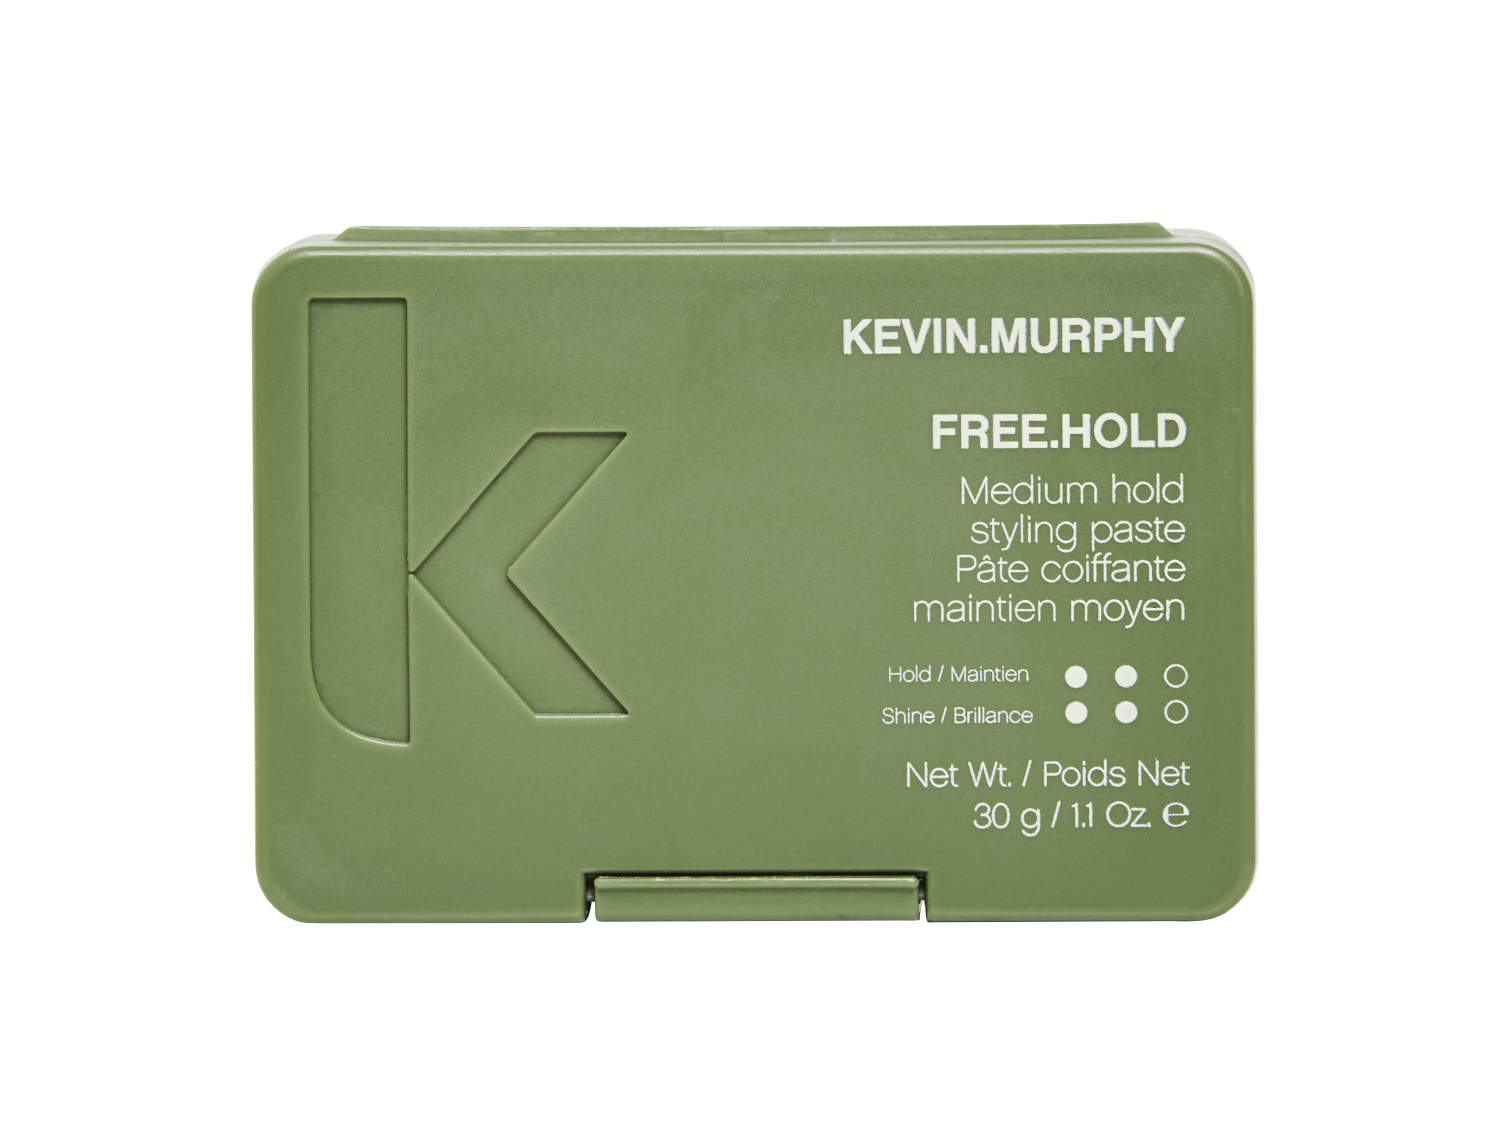 Arma Beauty - Kevin Murphy - FREE.HOLD